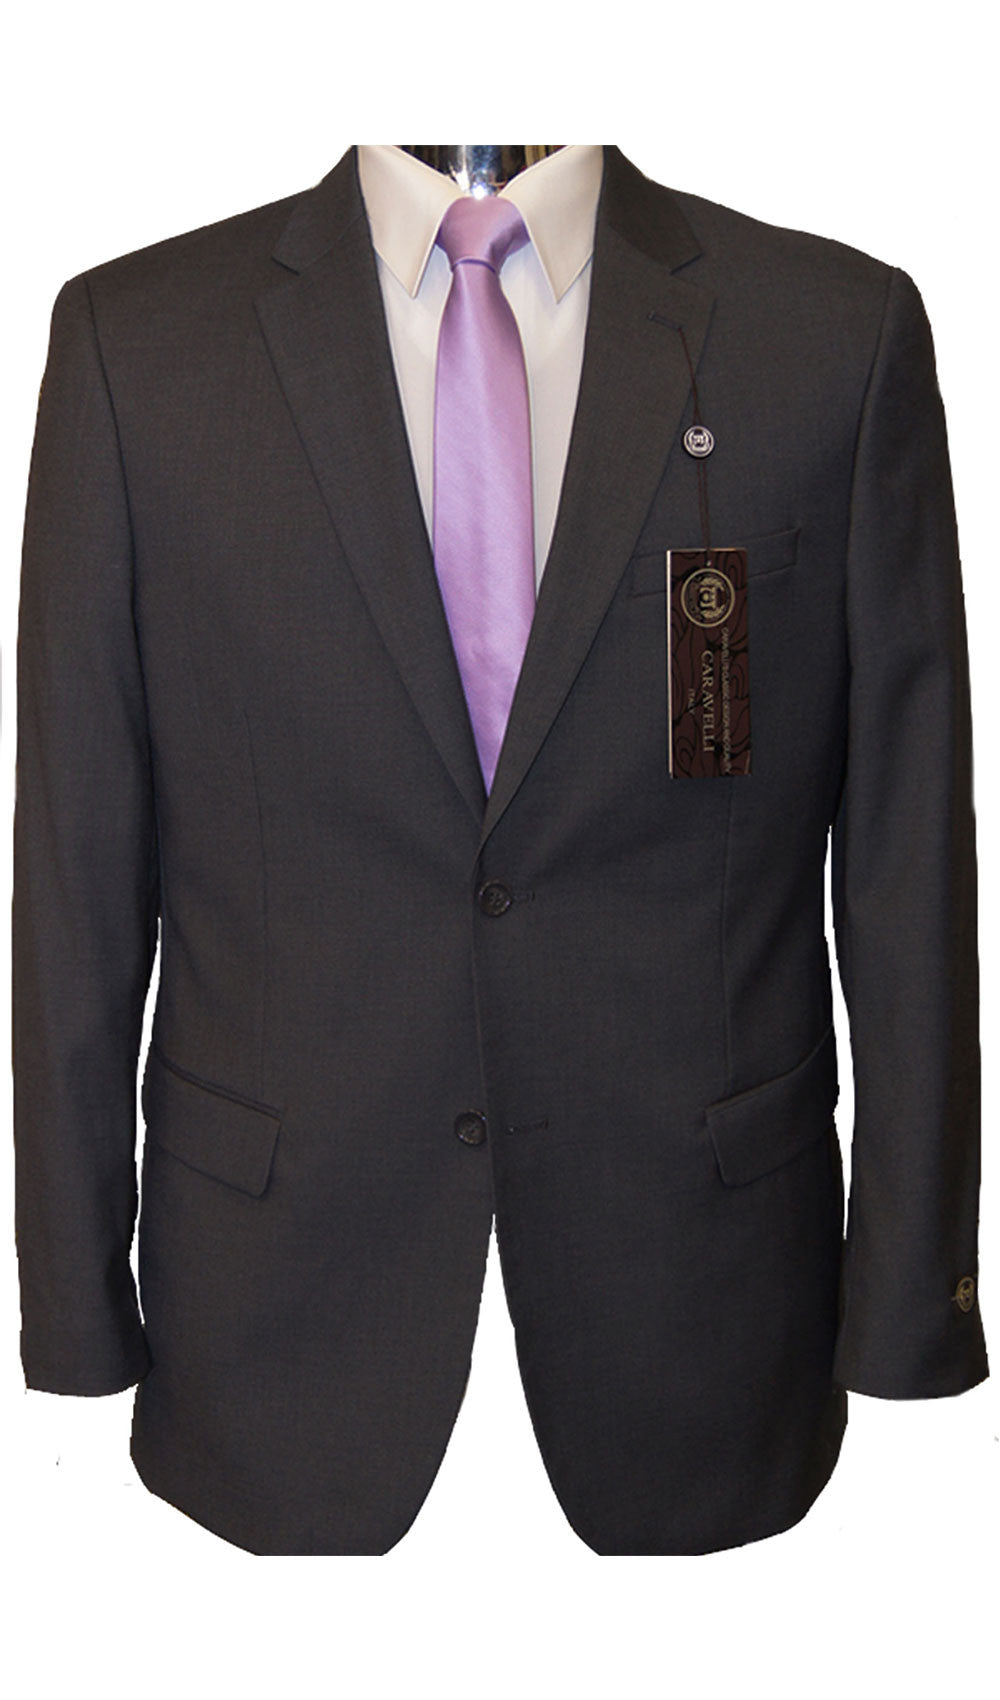 Caravelli - STYLE  DARK GREY SUIT Caravelli- Schaffer's Bridal in Des Moines & Phoenix